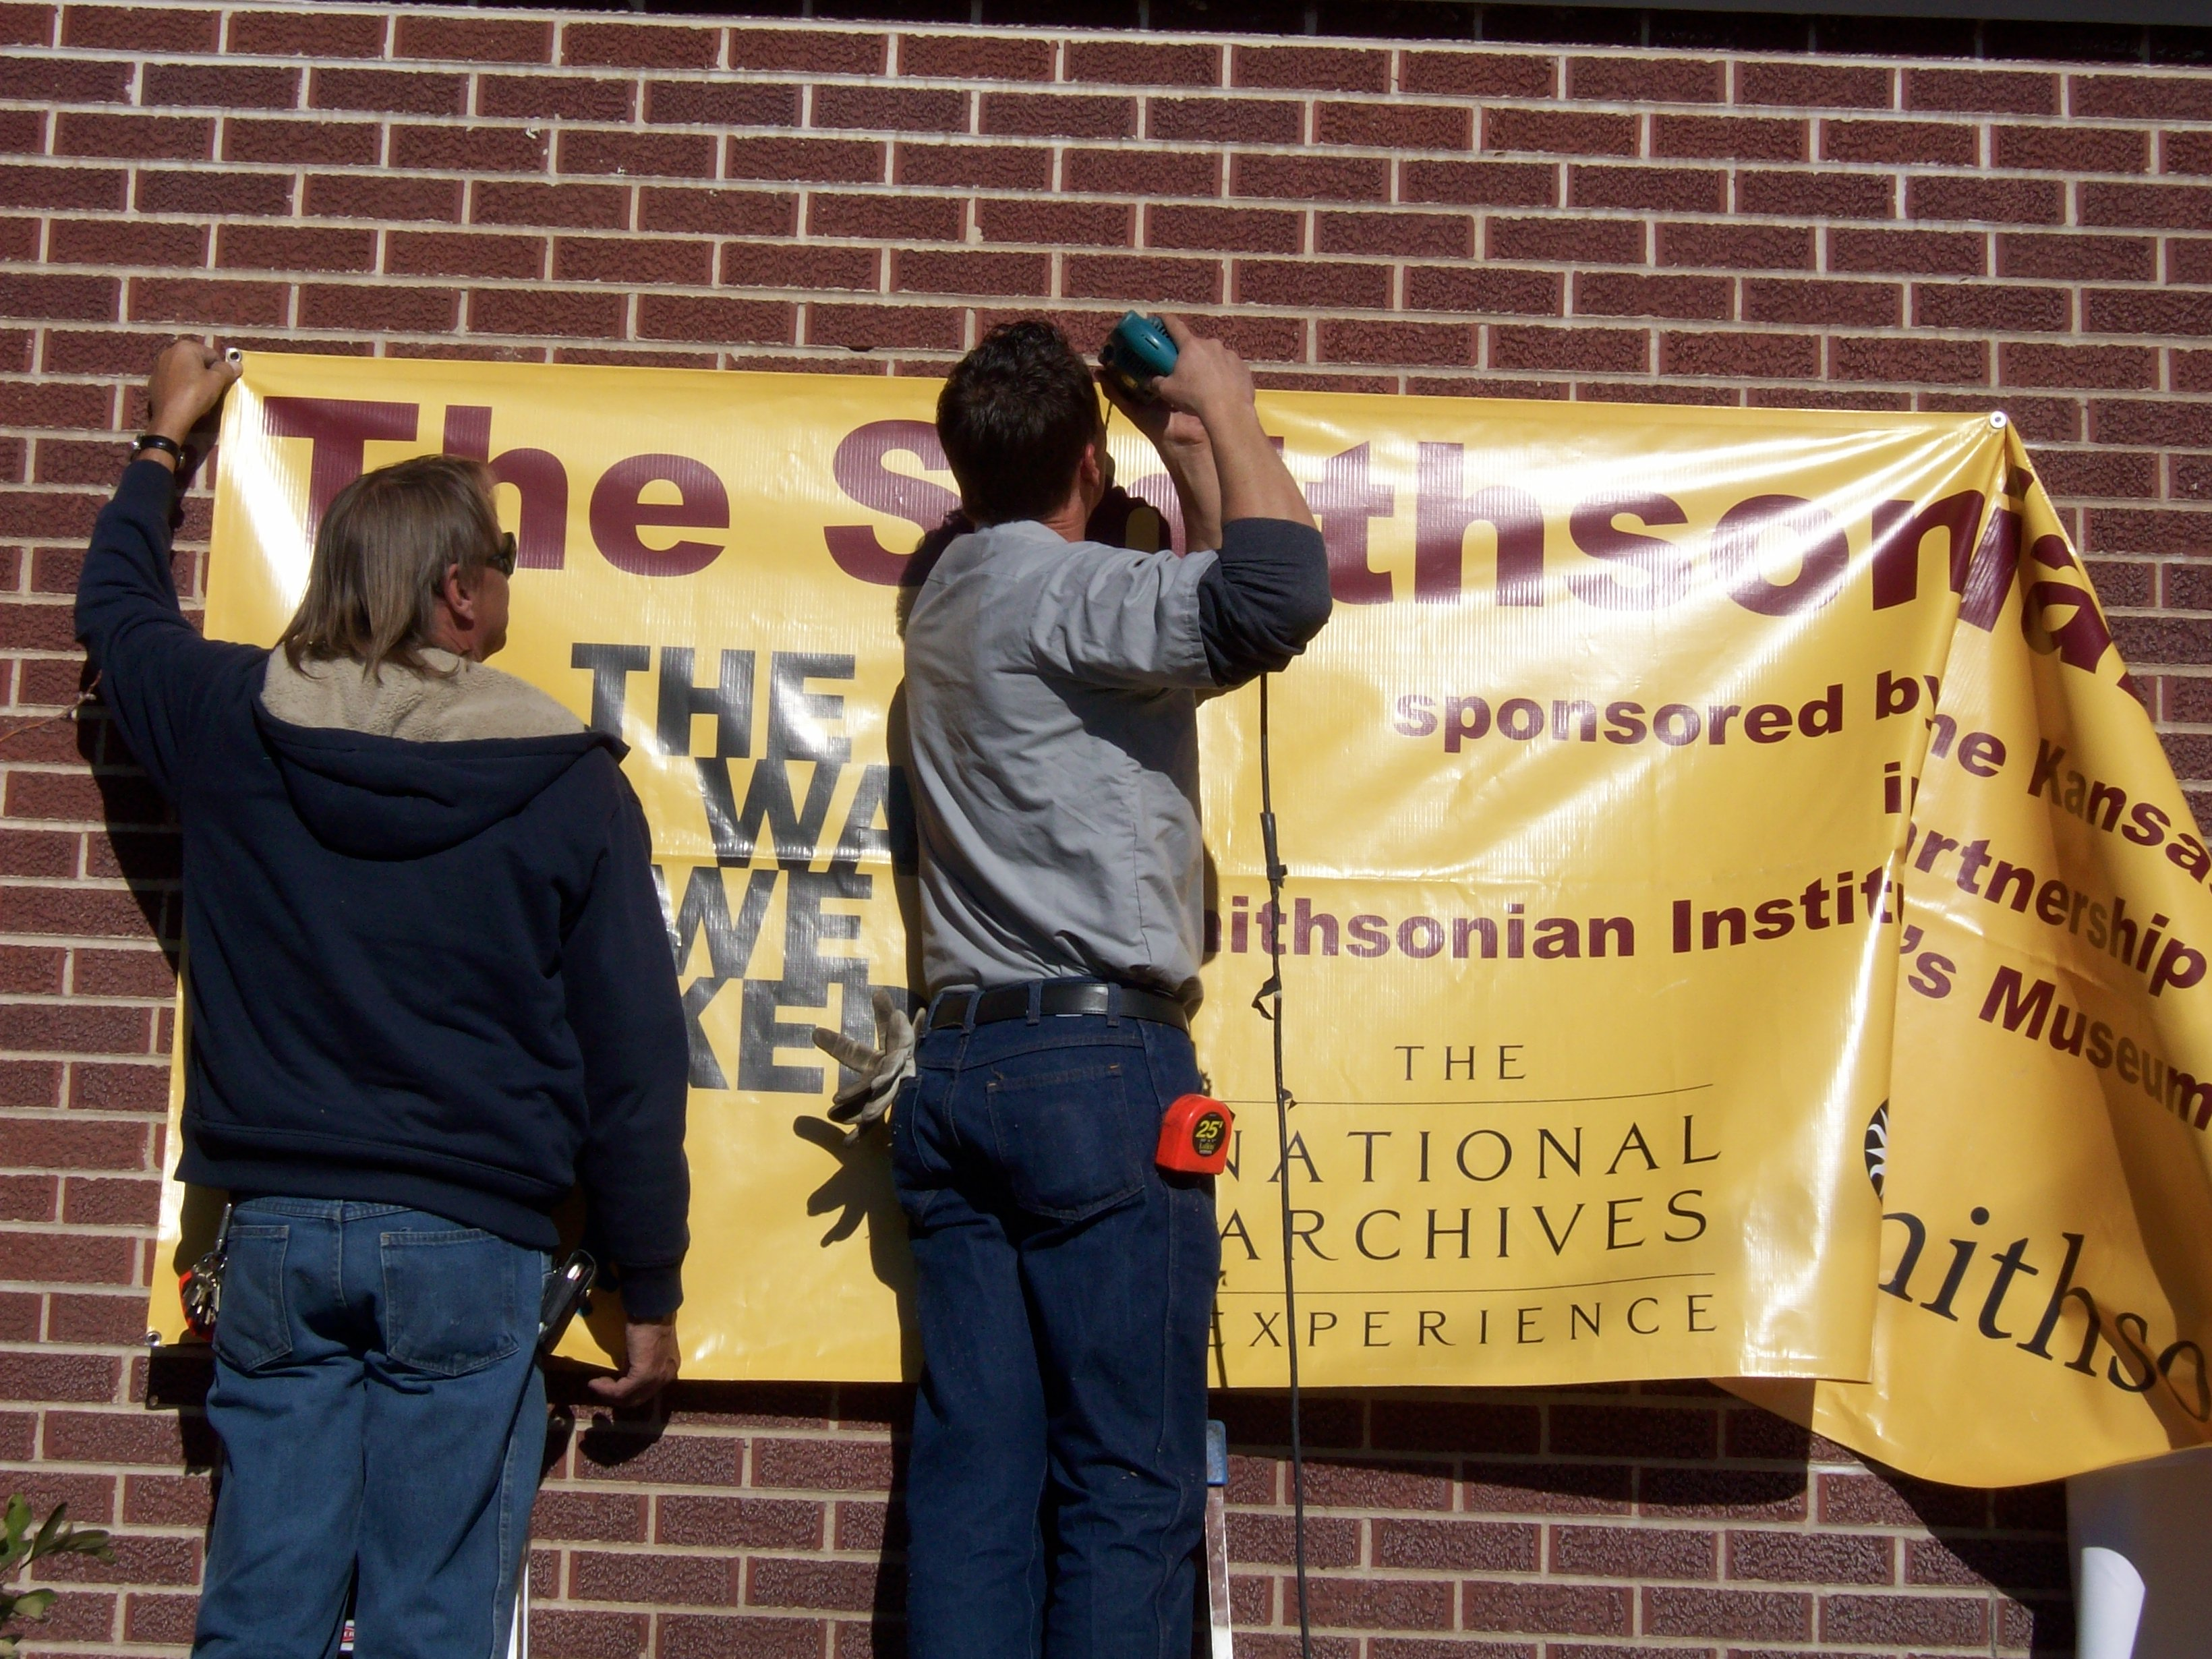 Ronnie and Ed attaching a banner to the outside of the museum to annouce the arrival of the Smithsonian!